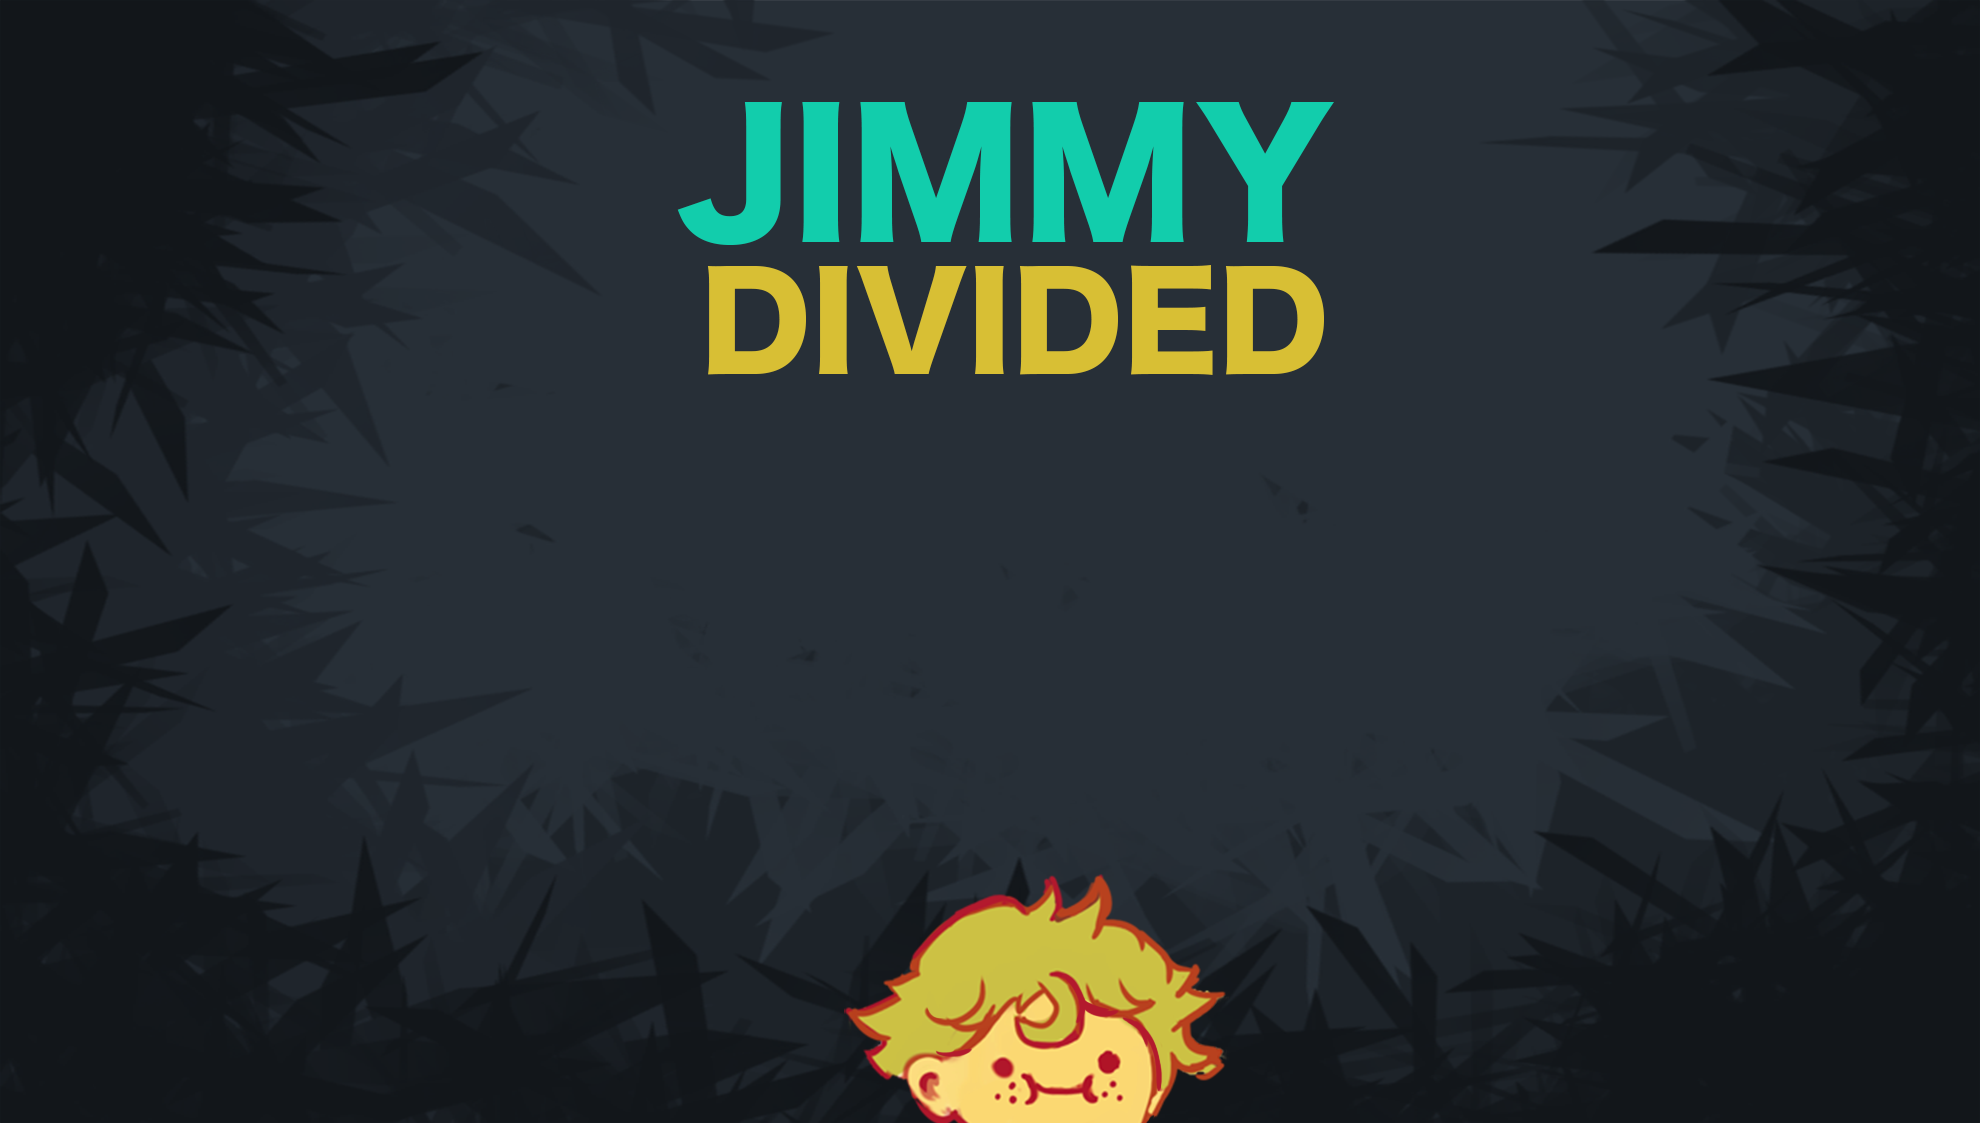 Jimmy Divided